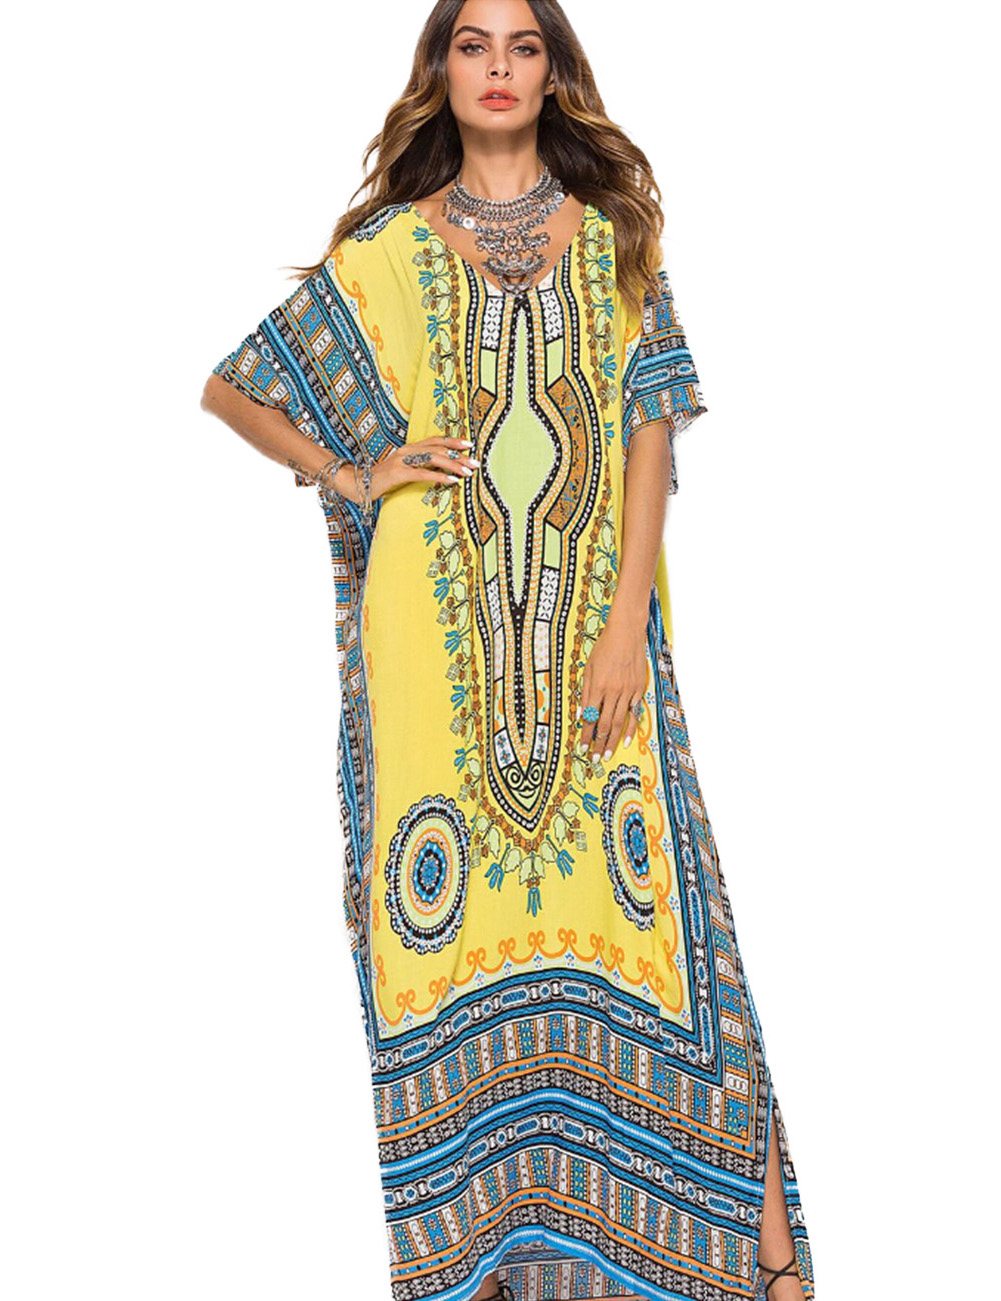 //cdn.affectcloud.com/hexinfashion/upload/imgs/African_Clothing/African_Dress/T190020-YE1/T190020-YE1-201911065dc23866ccfcd.jpg